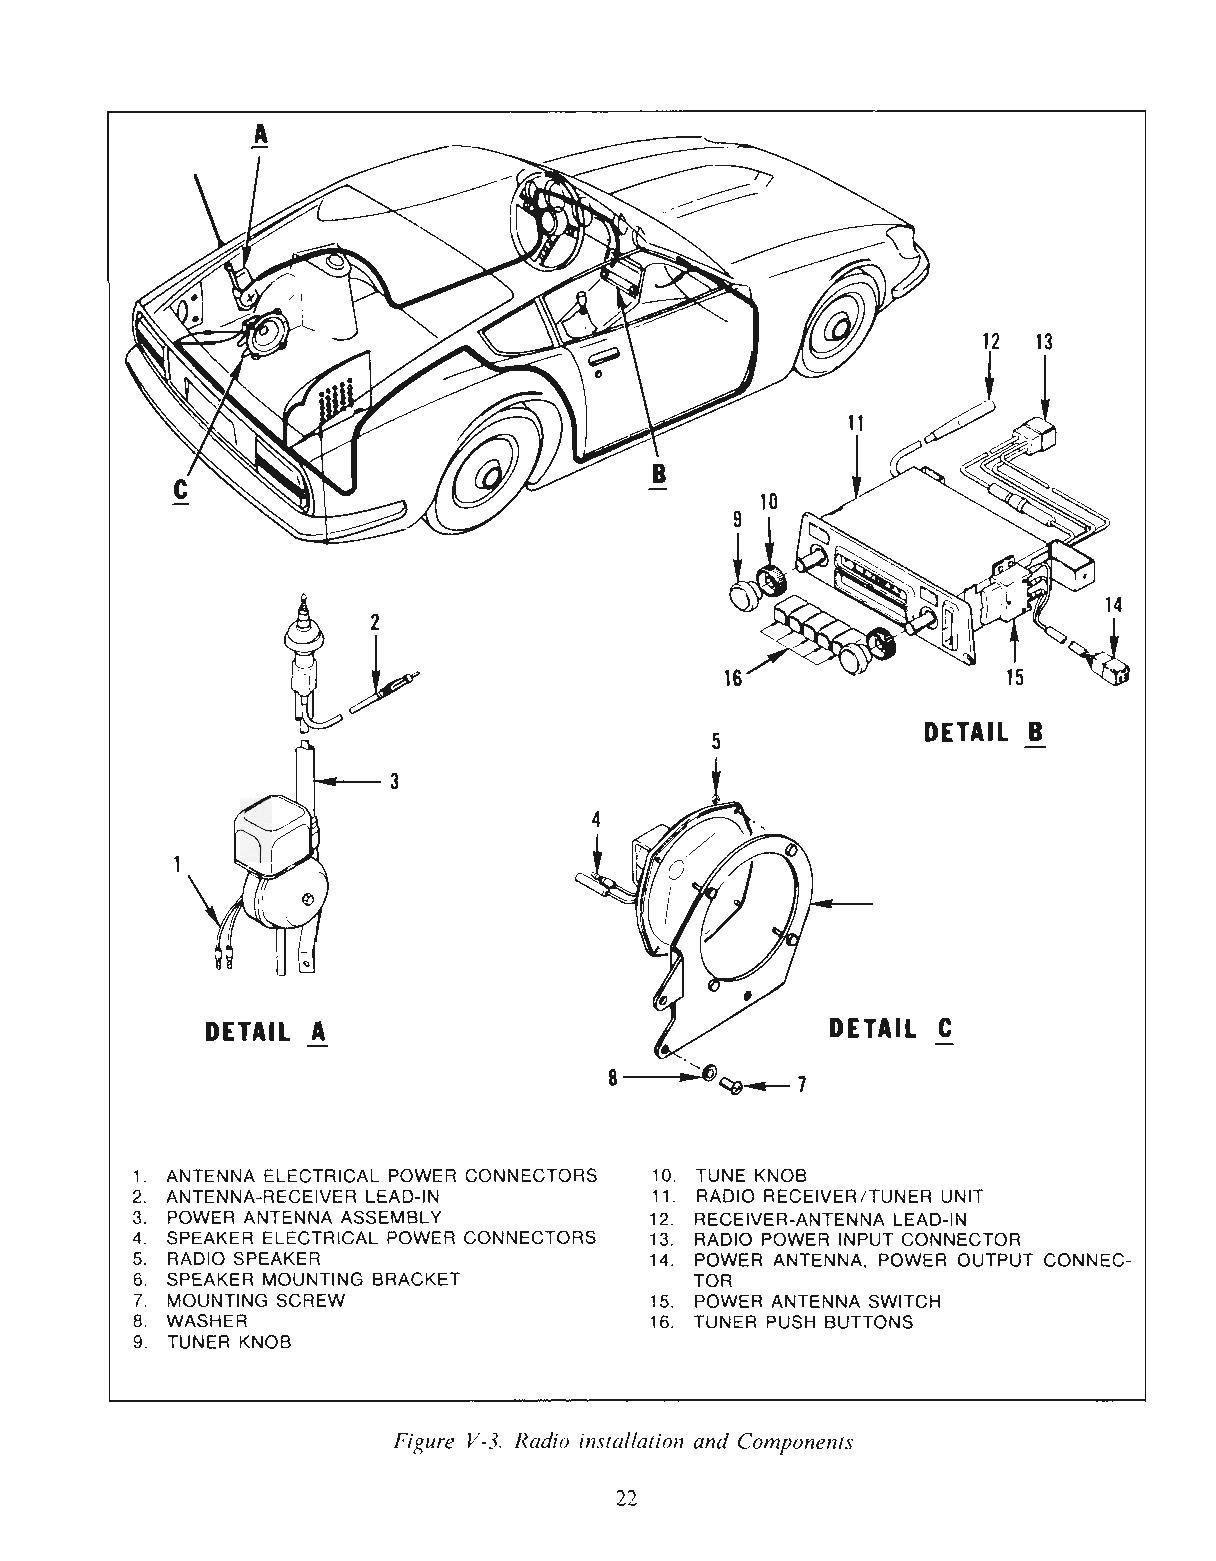 1973 240Z WIRING DIAGRAM - Auto Electrical Wiring Diagram  Datsun Z Wiring Diagram on 1971 datsun 240z engine, 1971 mg midget wiring diagram, 1971 datsun 240z brochure, 1971 volkswagen beetle wiring diagram, 1971 porsche 911 wiring diagram, 1971 datsun 240z carburetor, 1971 datsun 240z suspension, 1971 ford mustang wiring diagram, 1971 volvo wiring diagram, 1971 opel gt wiring diagram, 1971 datsun 240z tires, 1971 triumph tr6 wiring diagram, 1971 datsun 240z wheels, 1974 datsun 260z wiring diagram, 1971 chevrolet camaro wiring diagram, 1971 datsun 240z specifications, 1971 amc gremlin wiring diagram, 1971 dodge charger wiring diagram, 1972 datsun 240z wiring diagram, 1971 datsun 240z parts,